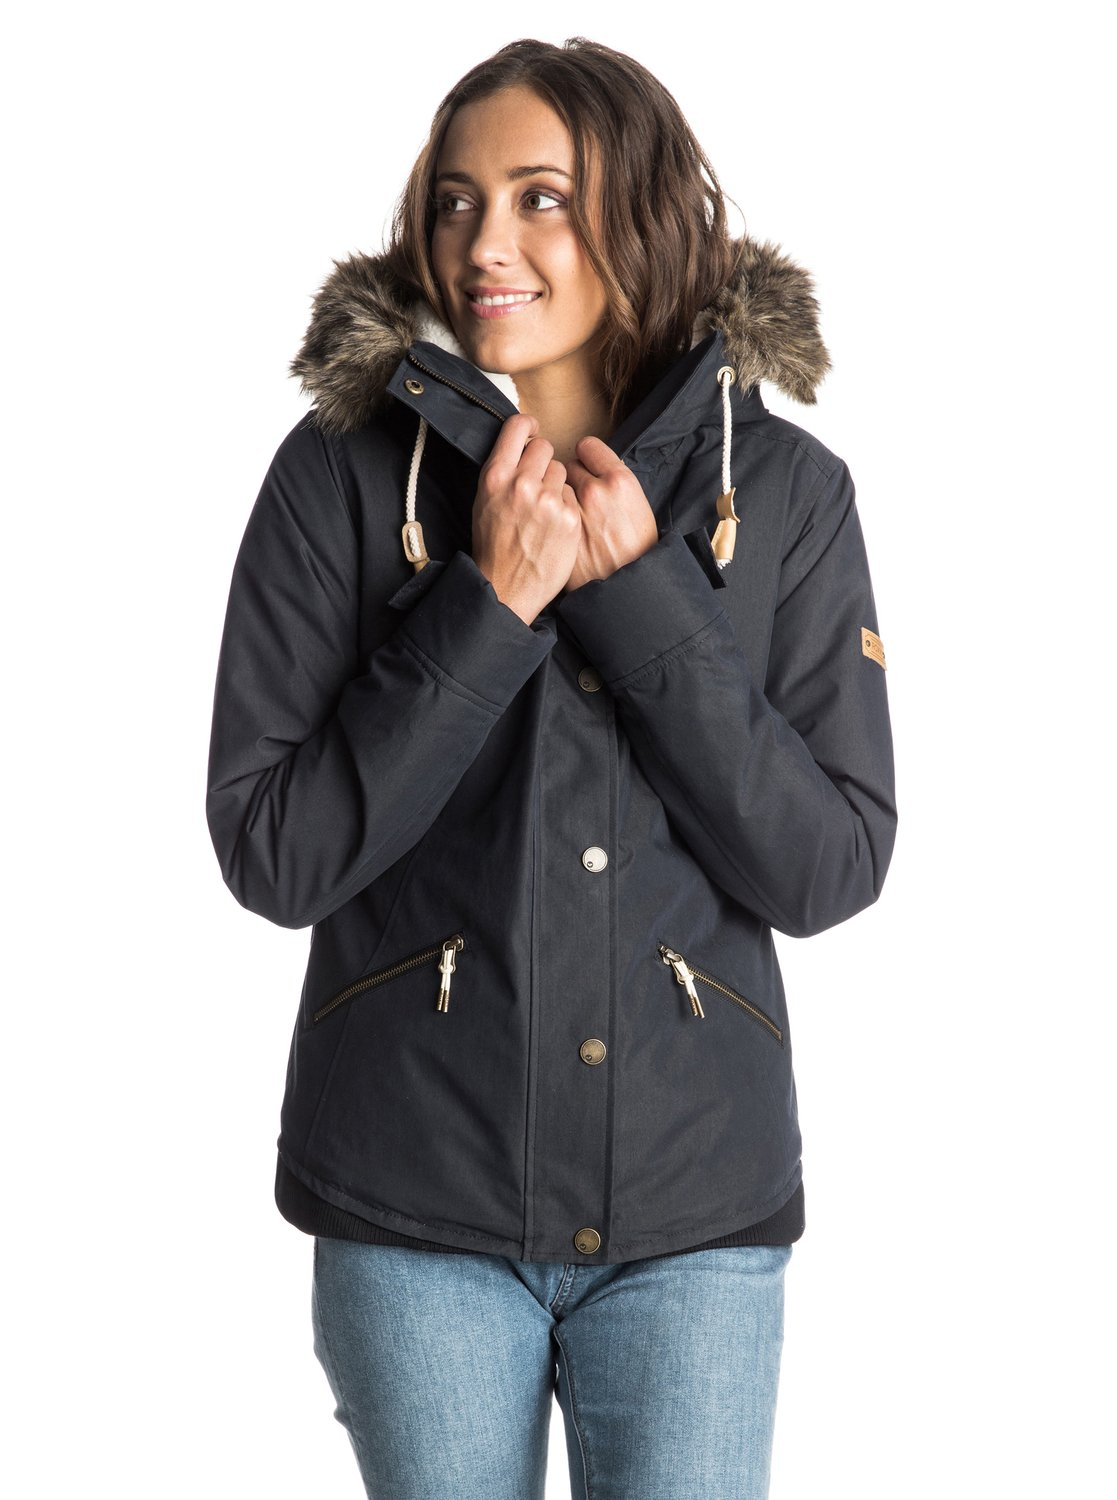 Steffi - Cold Weather Jacket for Women Roxy Steffi - Jacket